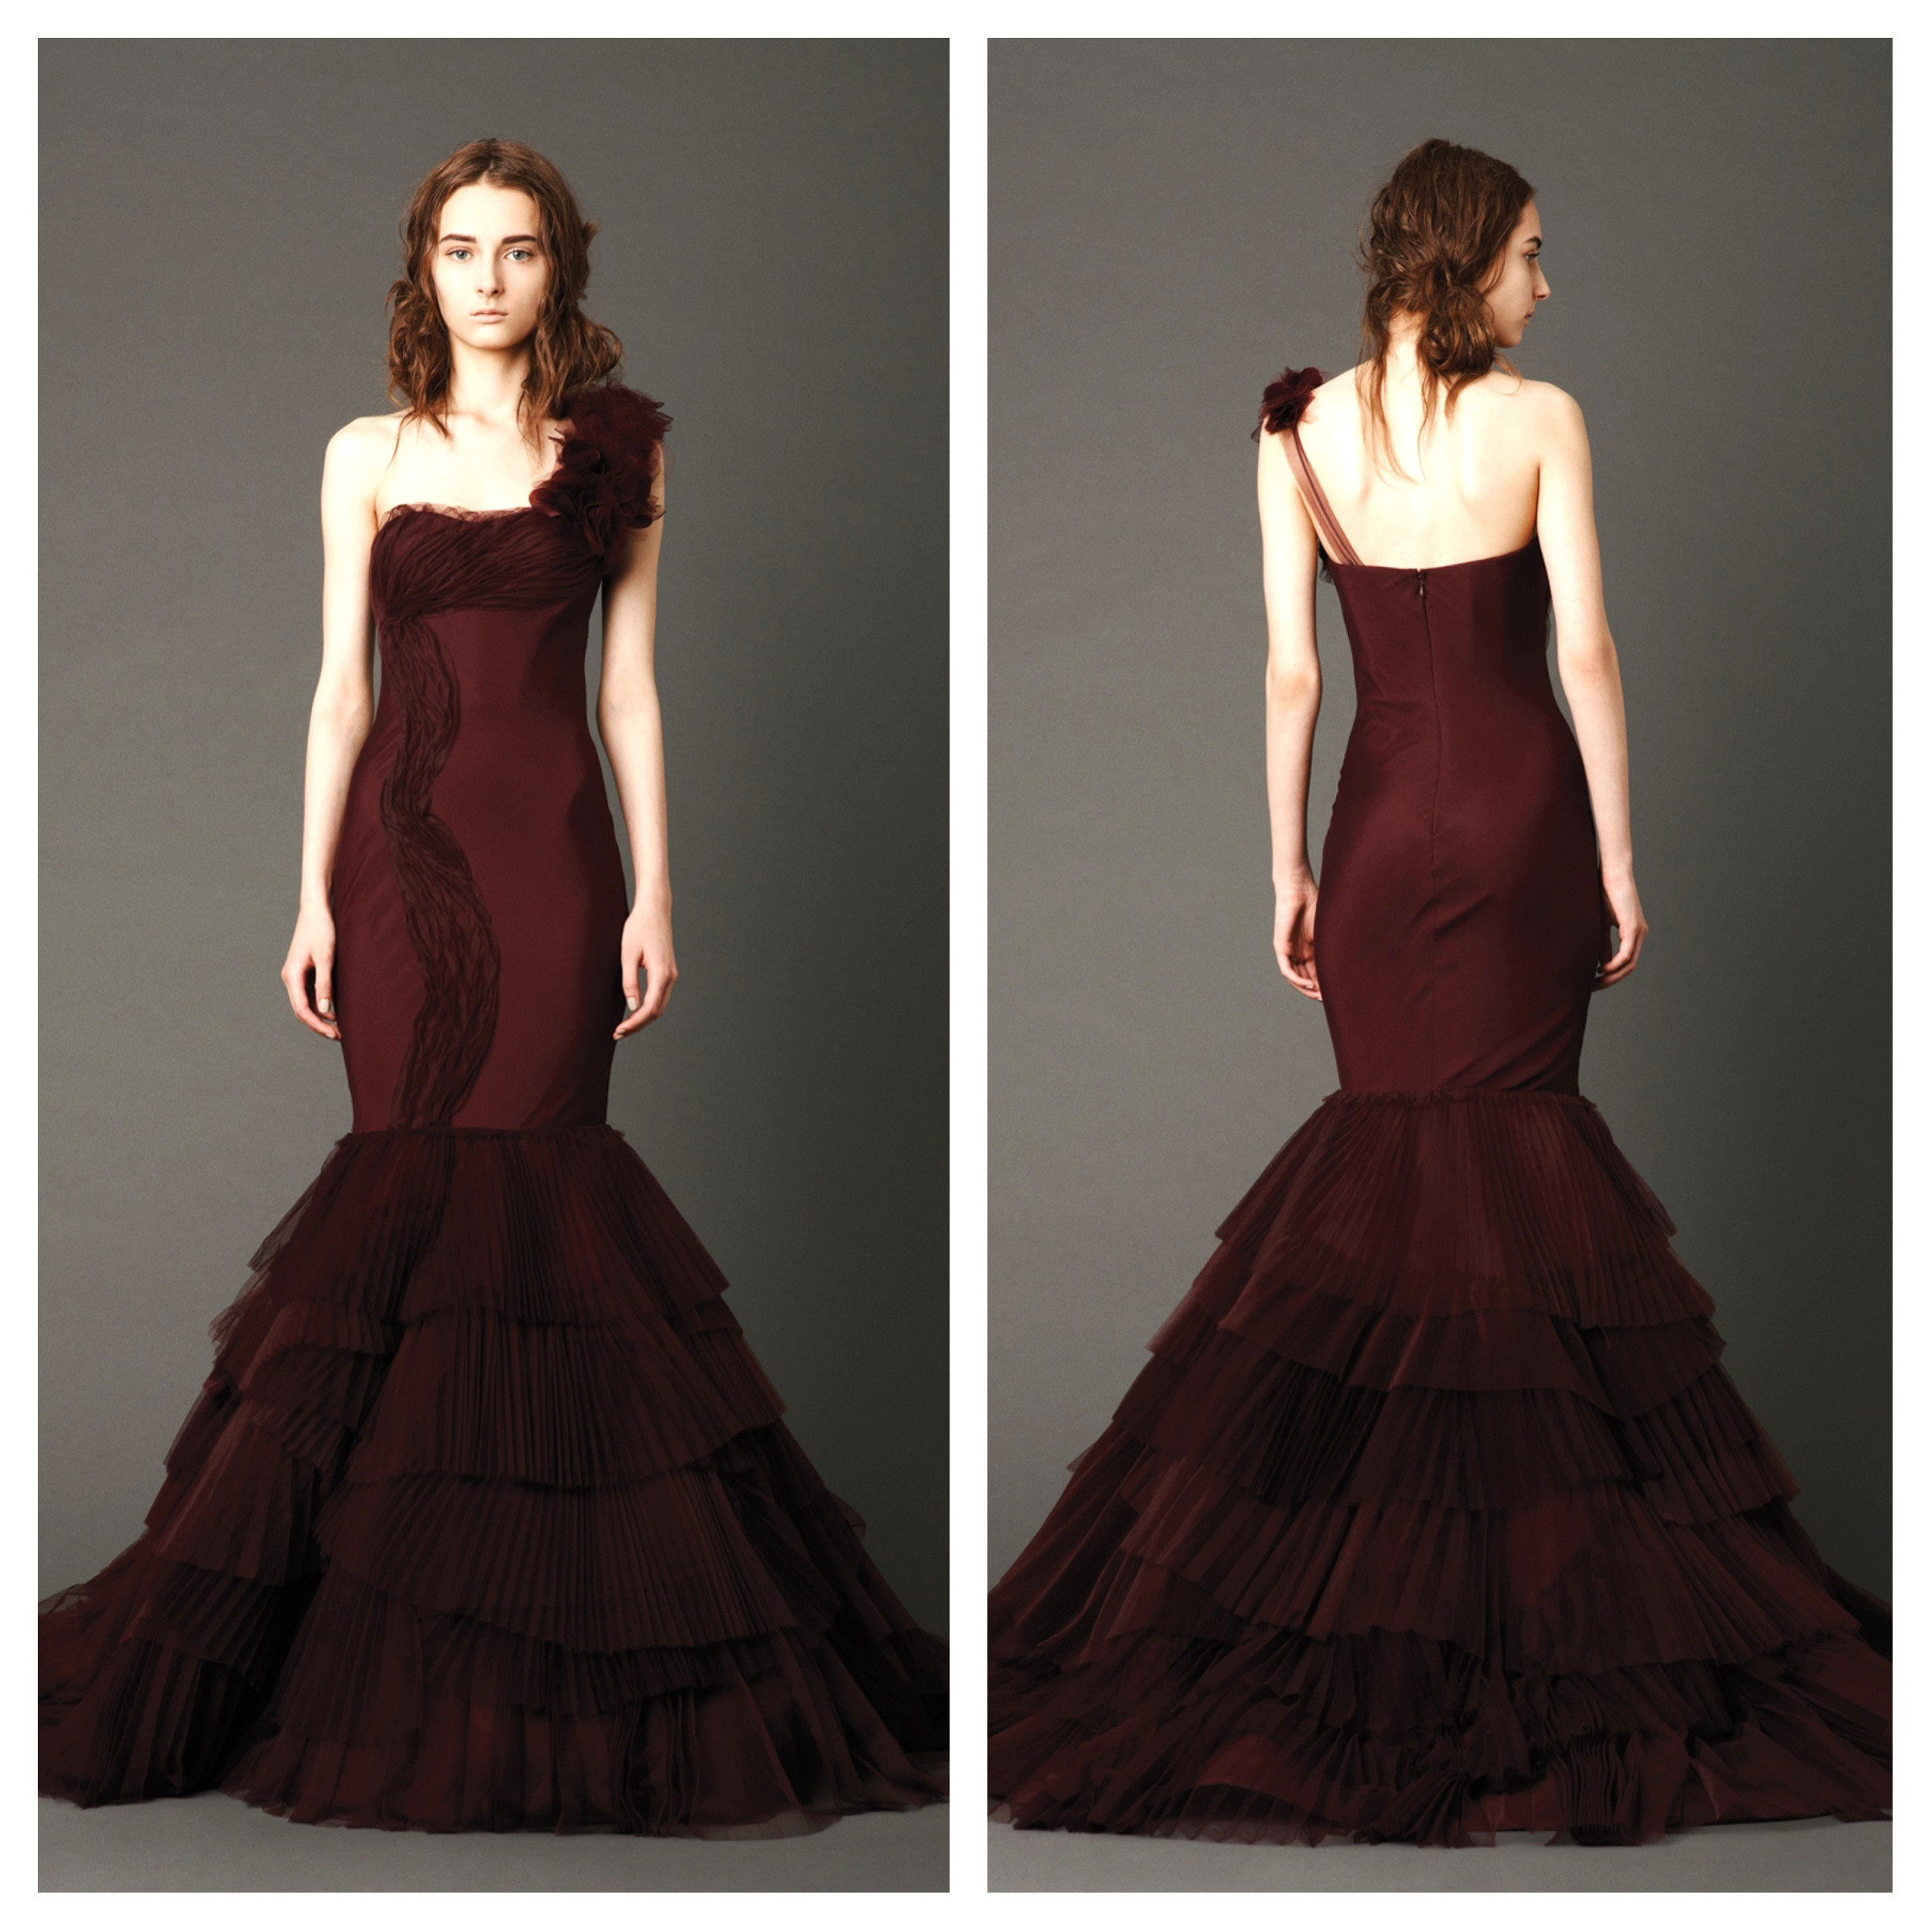 Vera wang goes red for spring wedding dresses the big for Red wedding dress vera wang